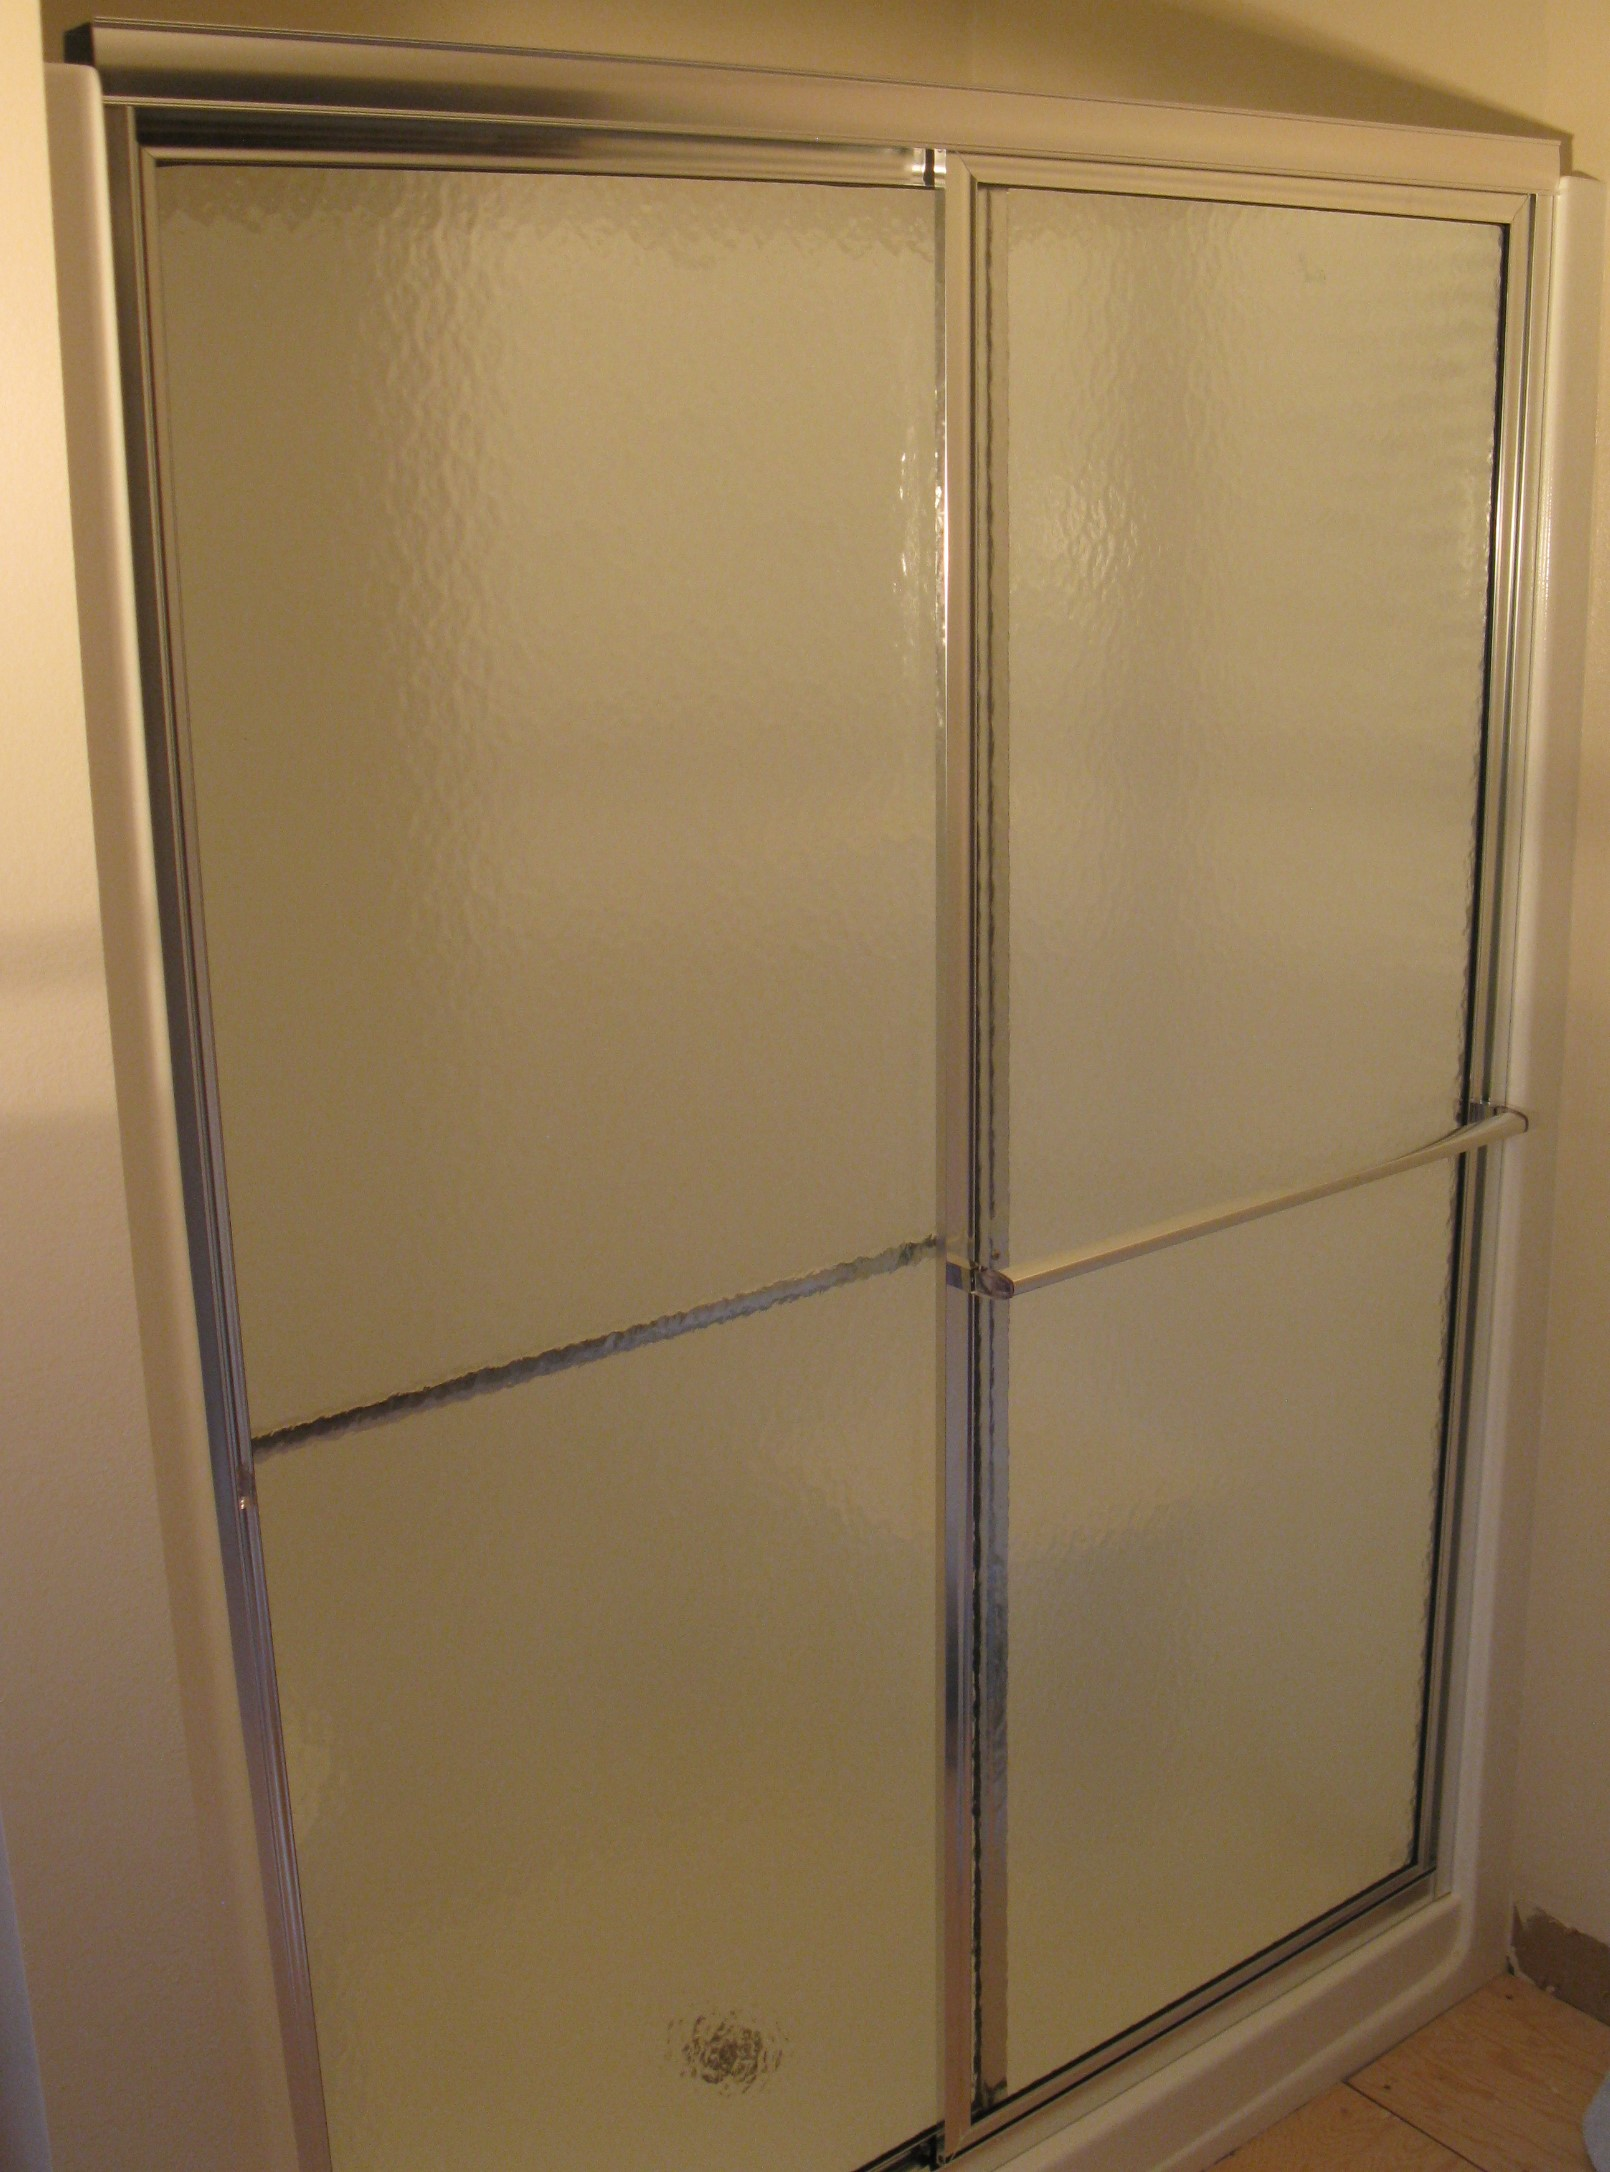 Bathroom Remodel - Replace Shower Doors - My Handy Family